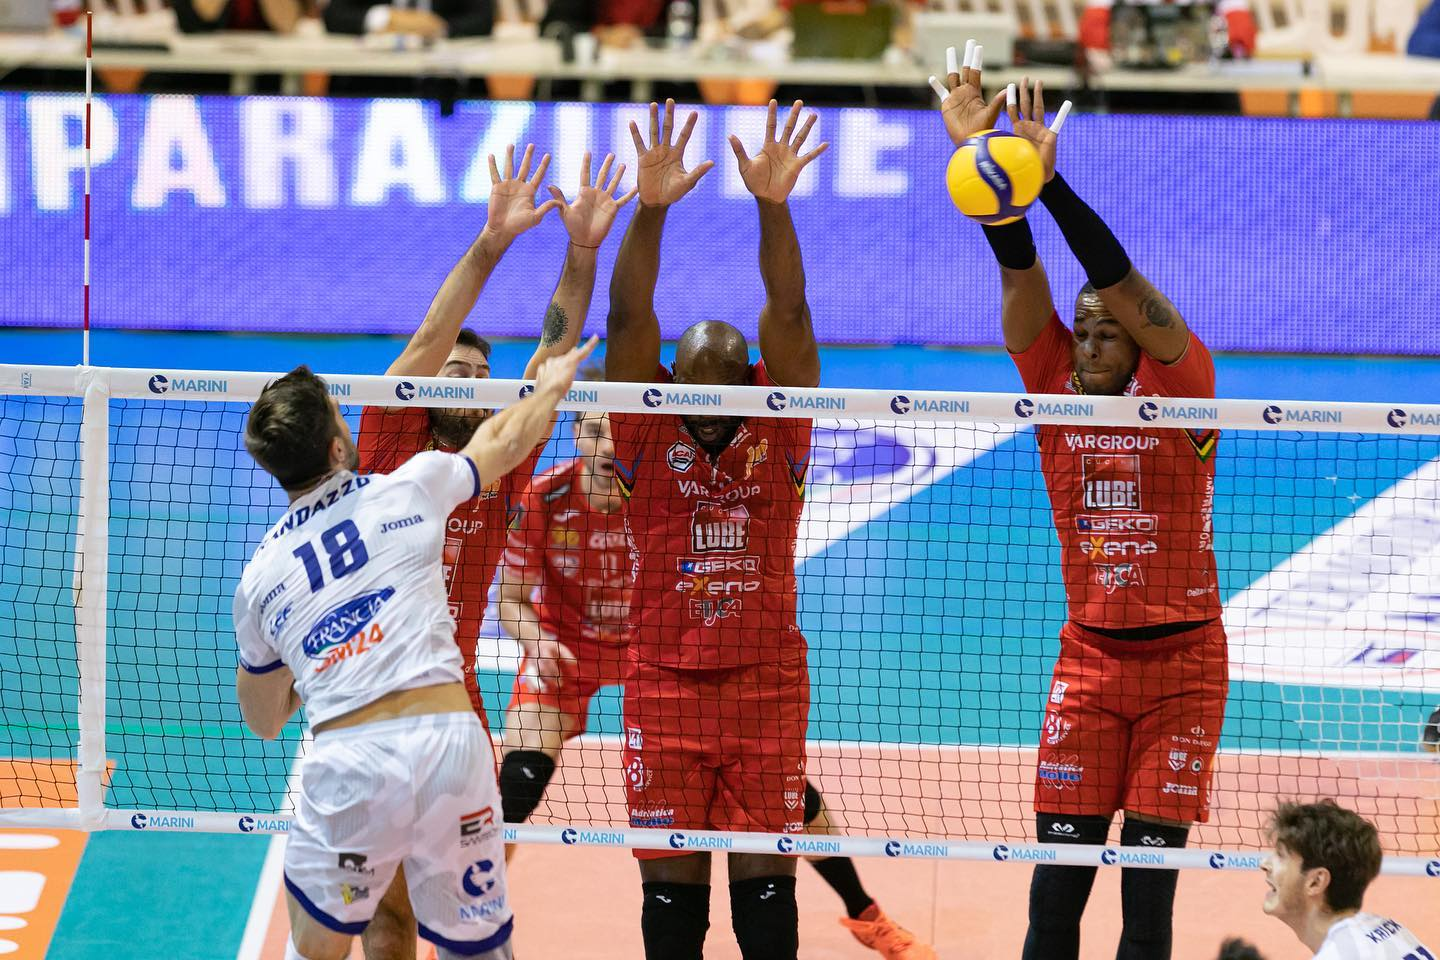 Lube vince 3-0 a Latina con Top Volley, Osmany Juantorena Mvp